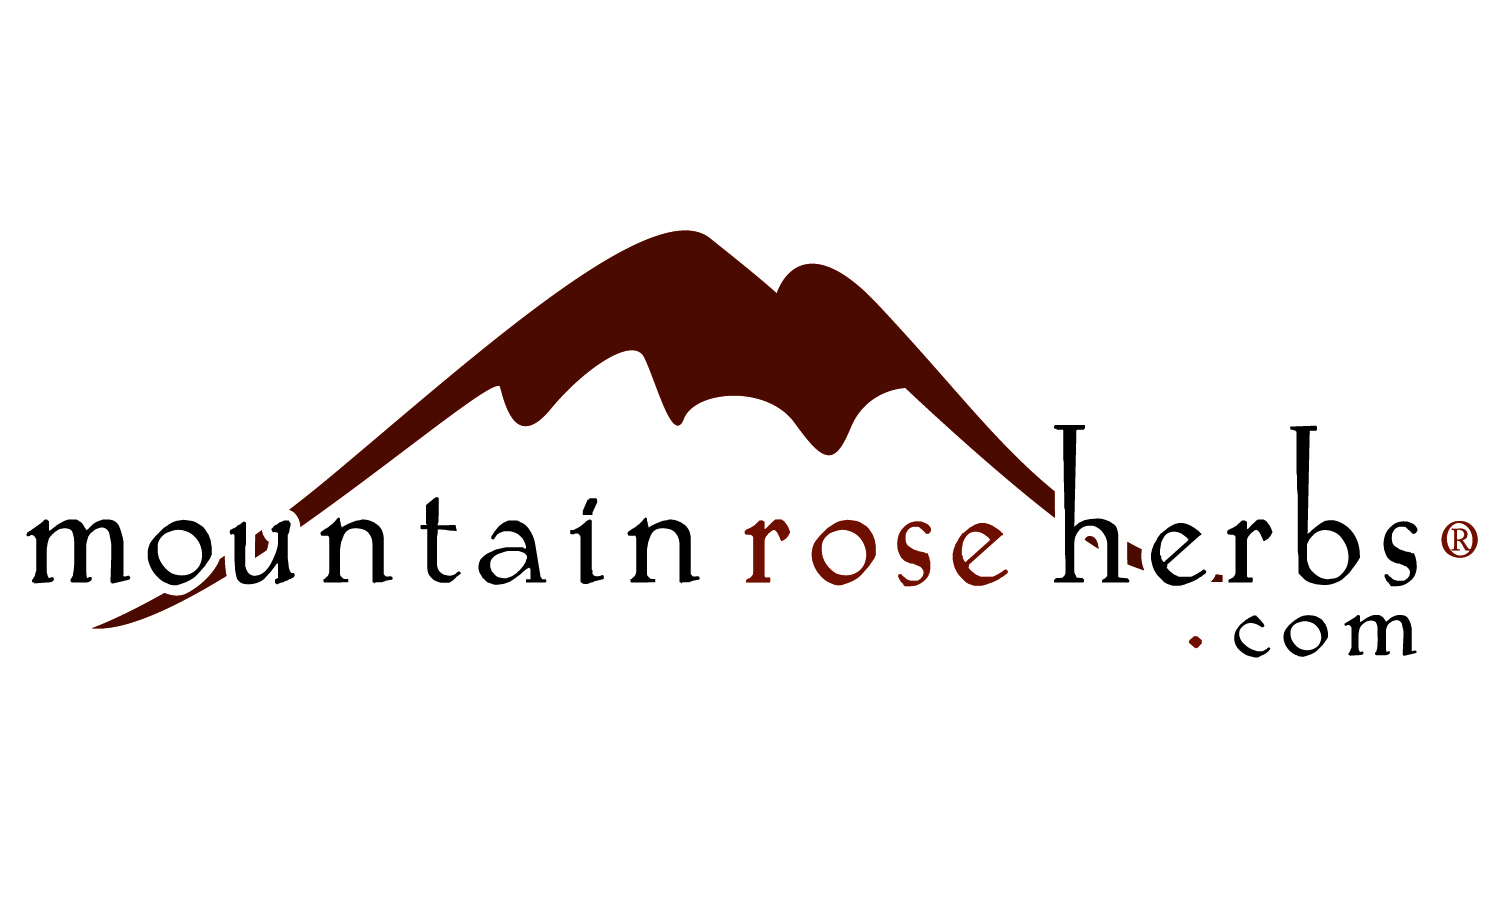 The APOTHECARY KITCHEN's collection of wild harvested, organic teas is provided by MOUNTAIN ROSE HERBS.